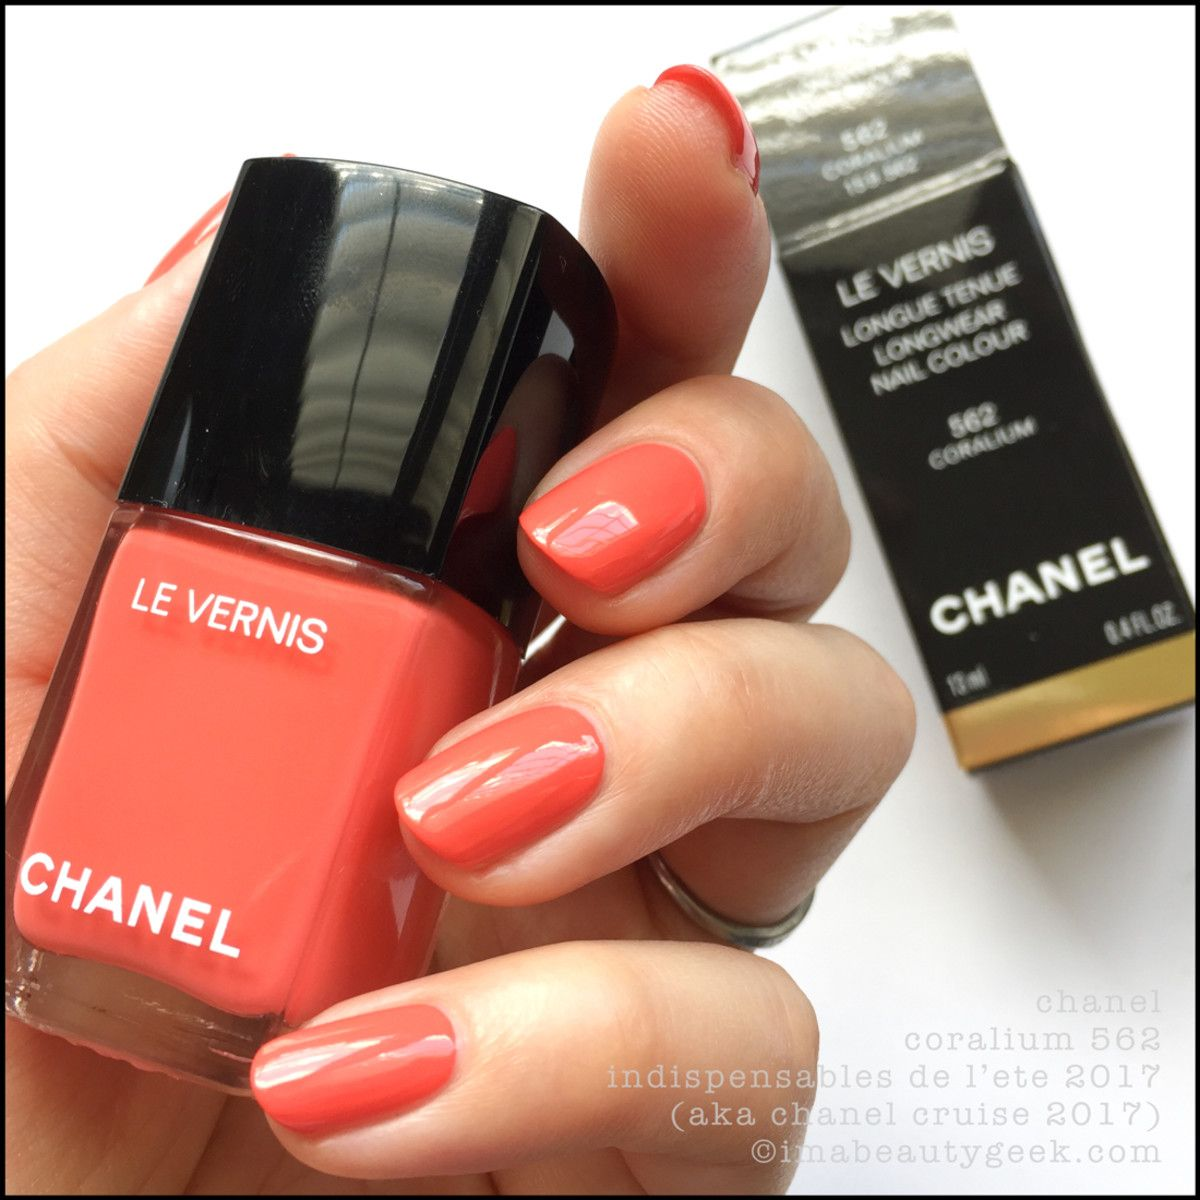 CHANEL LE VERNIS CRUISE COLLECTION SUMMER 2017 SWATCHES | Haar und ...